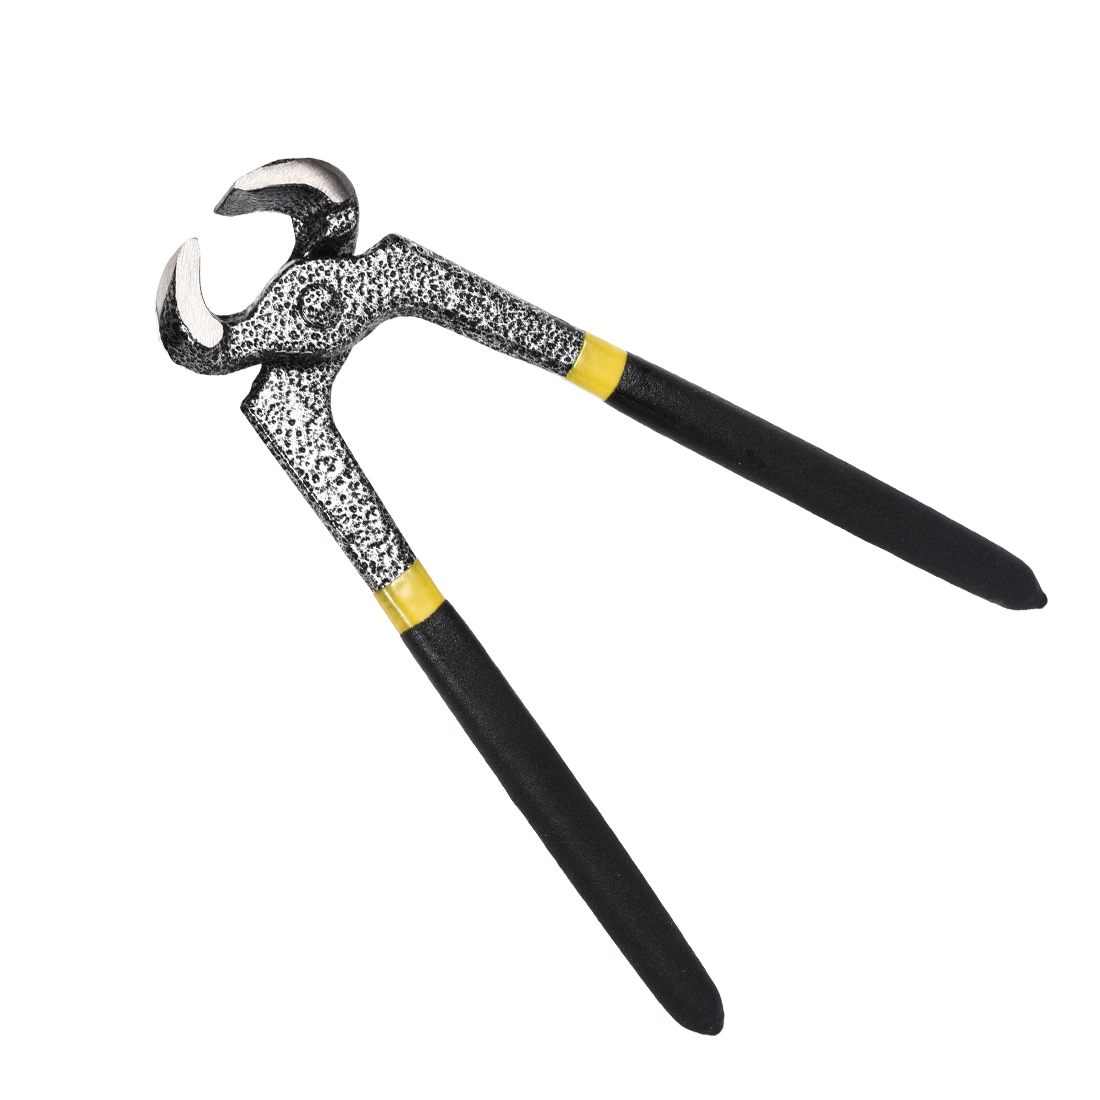 End Cutting Pliers 8 Inch Precision End Nippers Wire Cutter Pliers